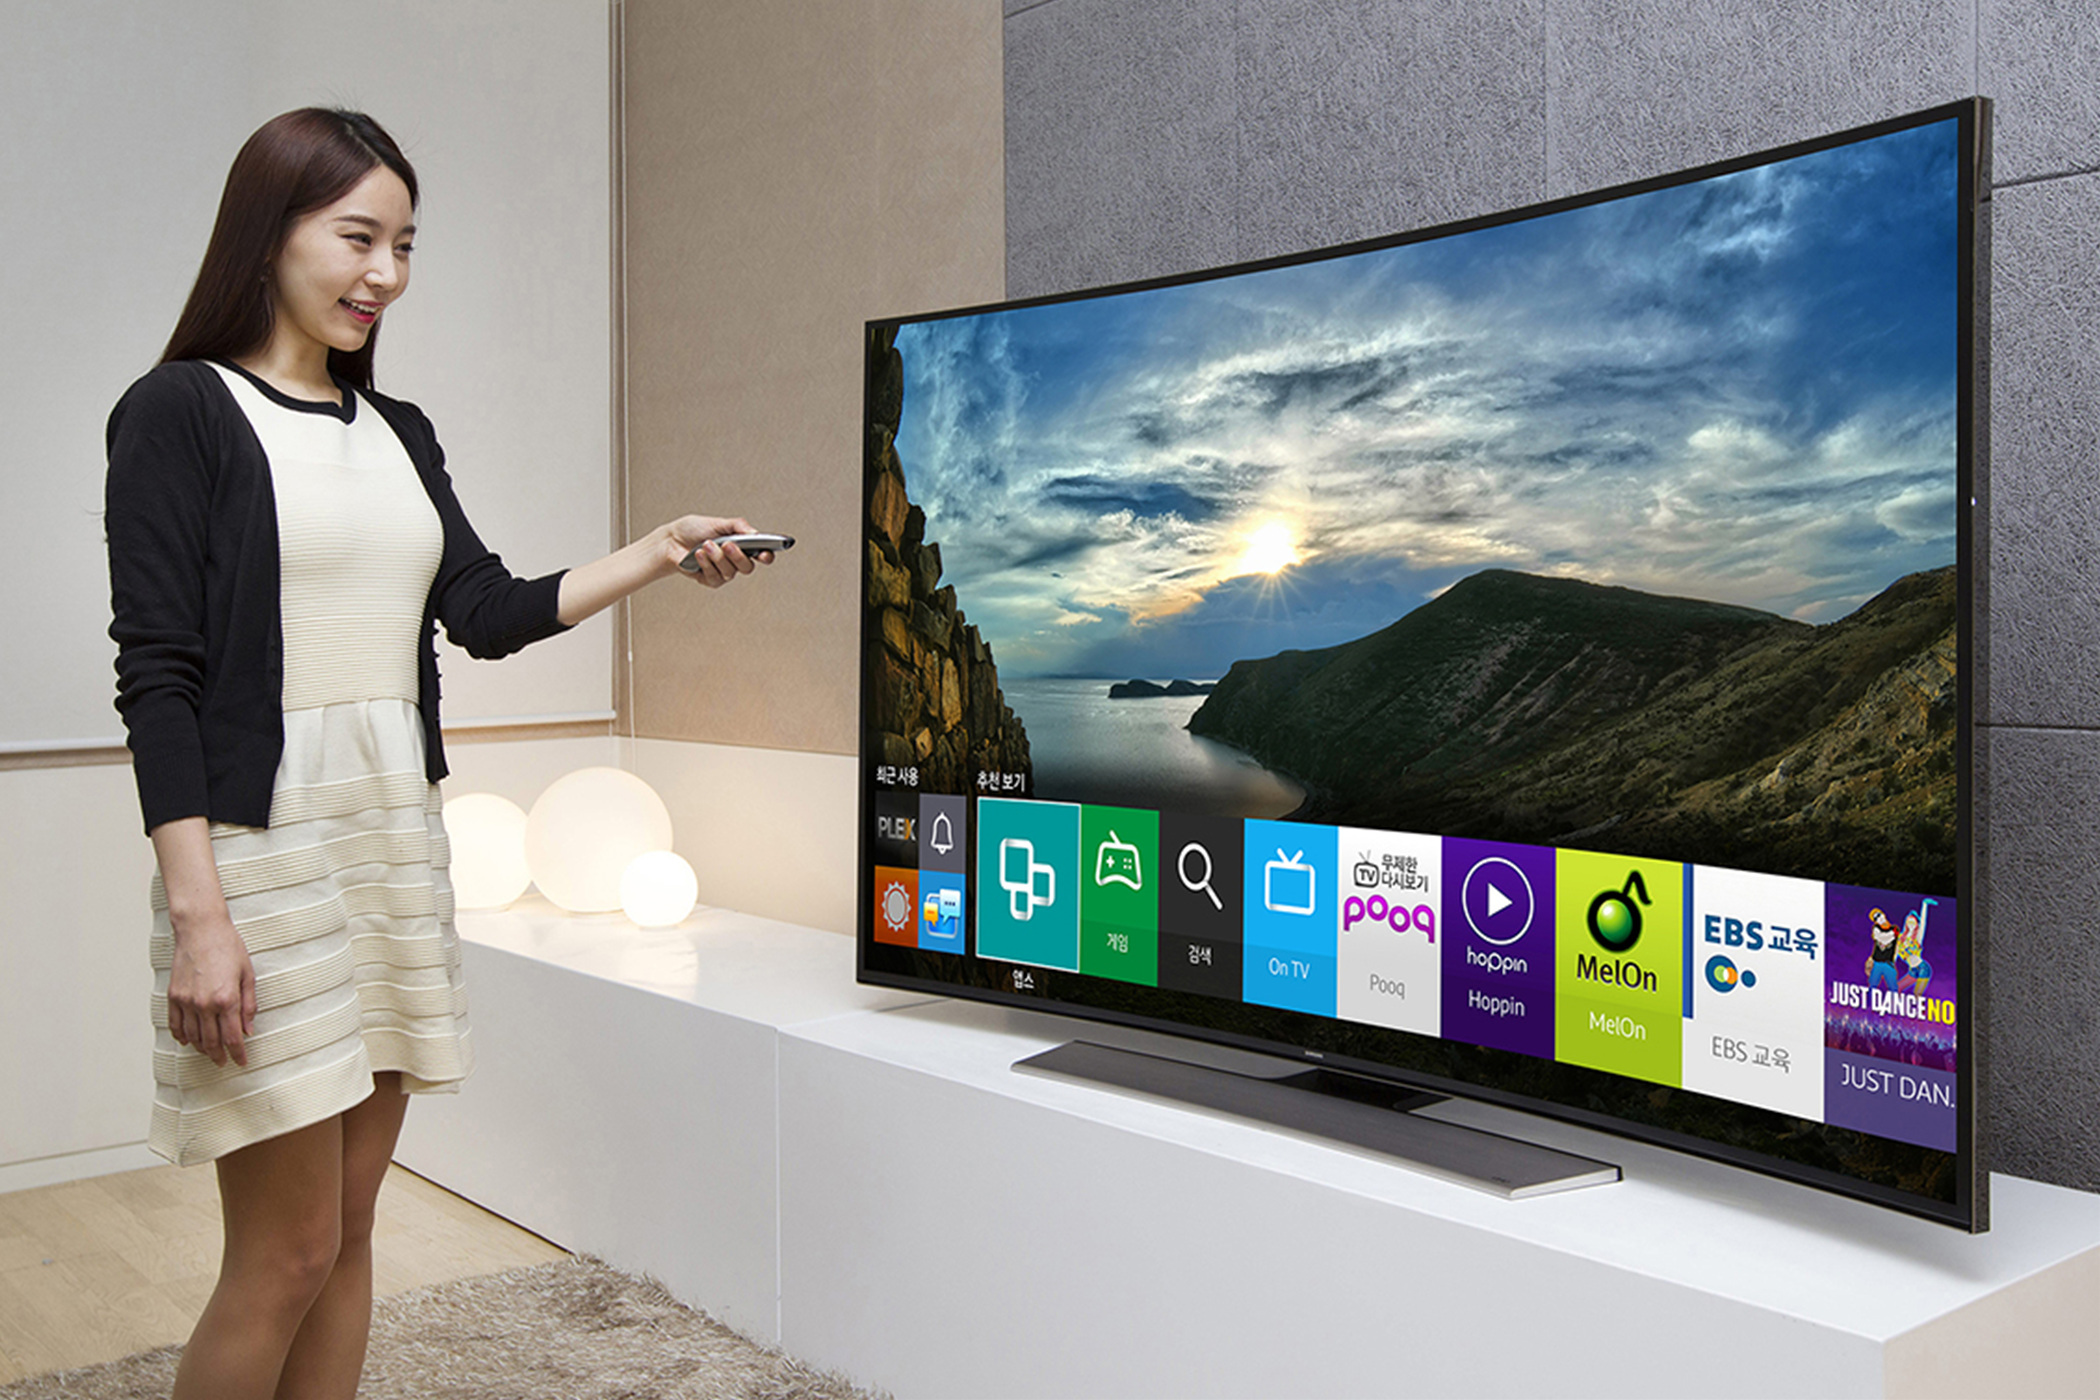 Samsung has revealed it will offer iTunes movies and TV shows, and Airplay 2 support, on its 2019 Smart TV models.